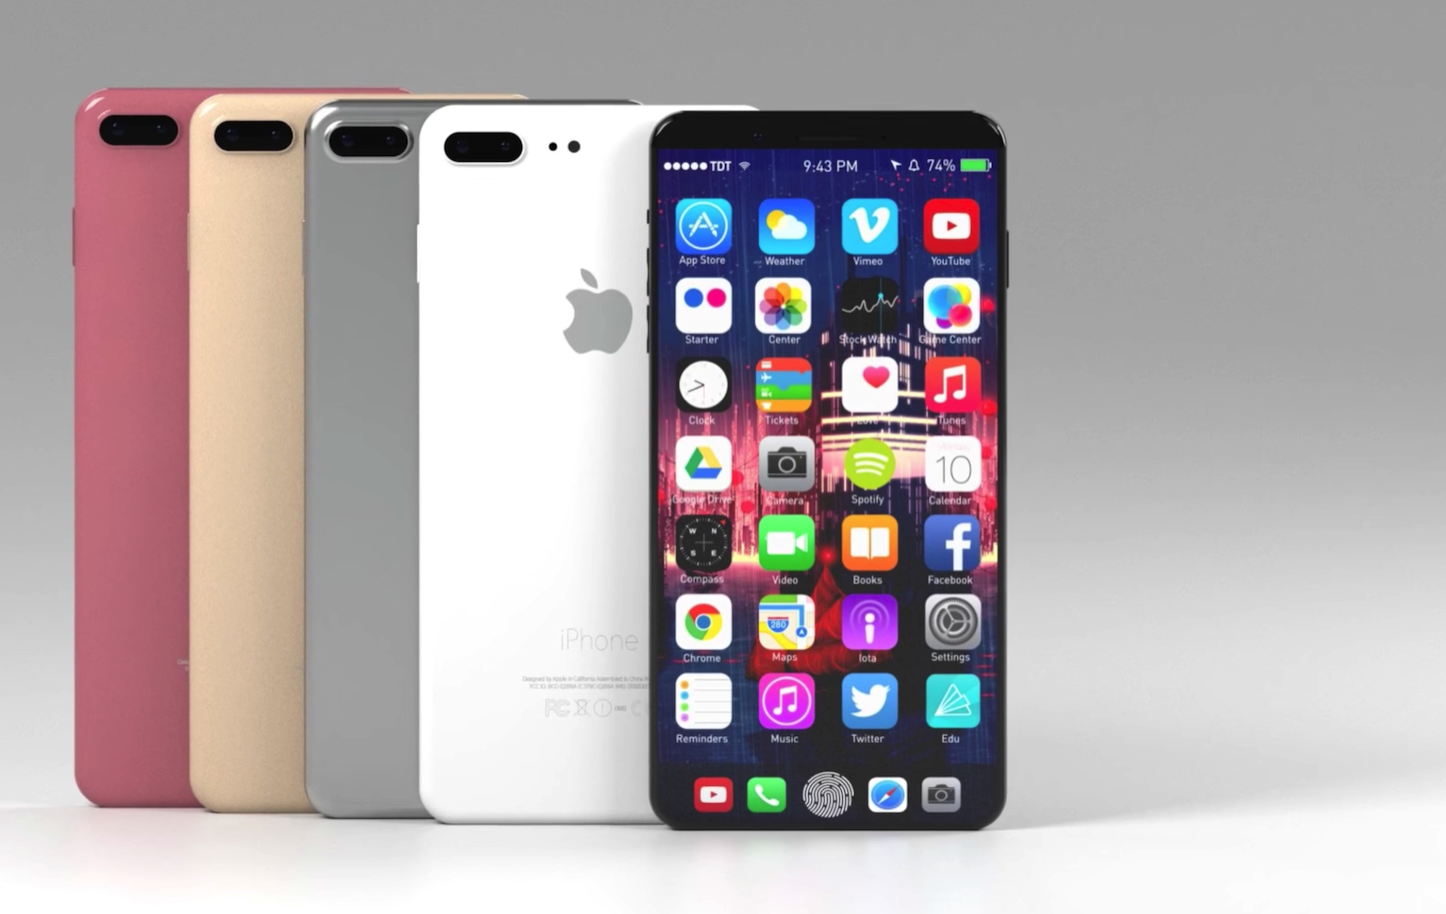 iphone-8-ios11-concept-5.png